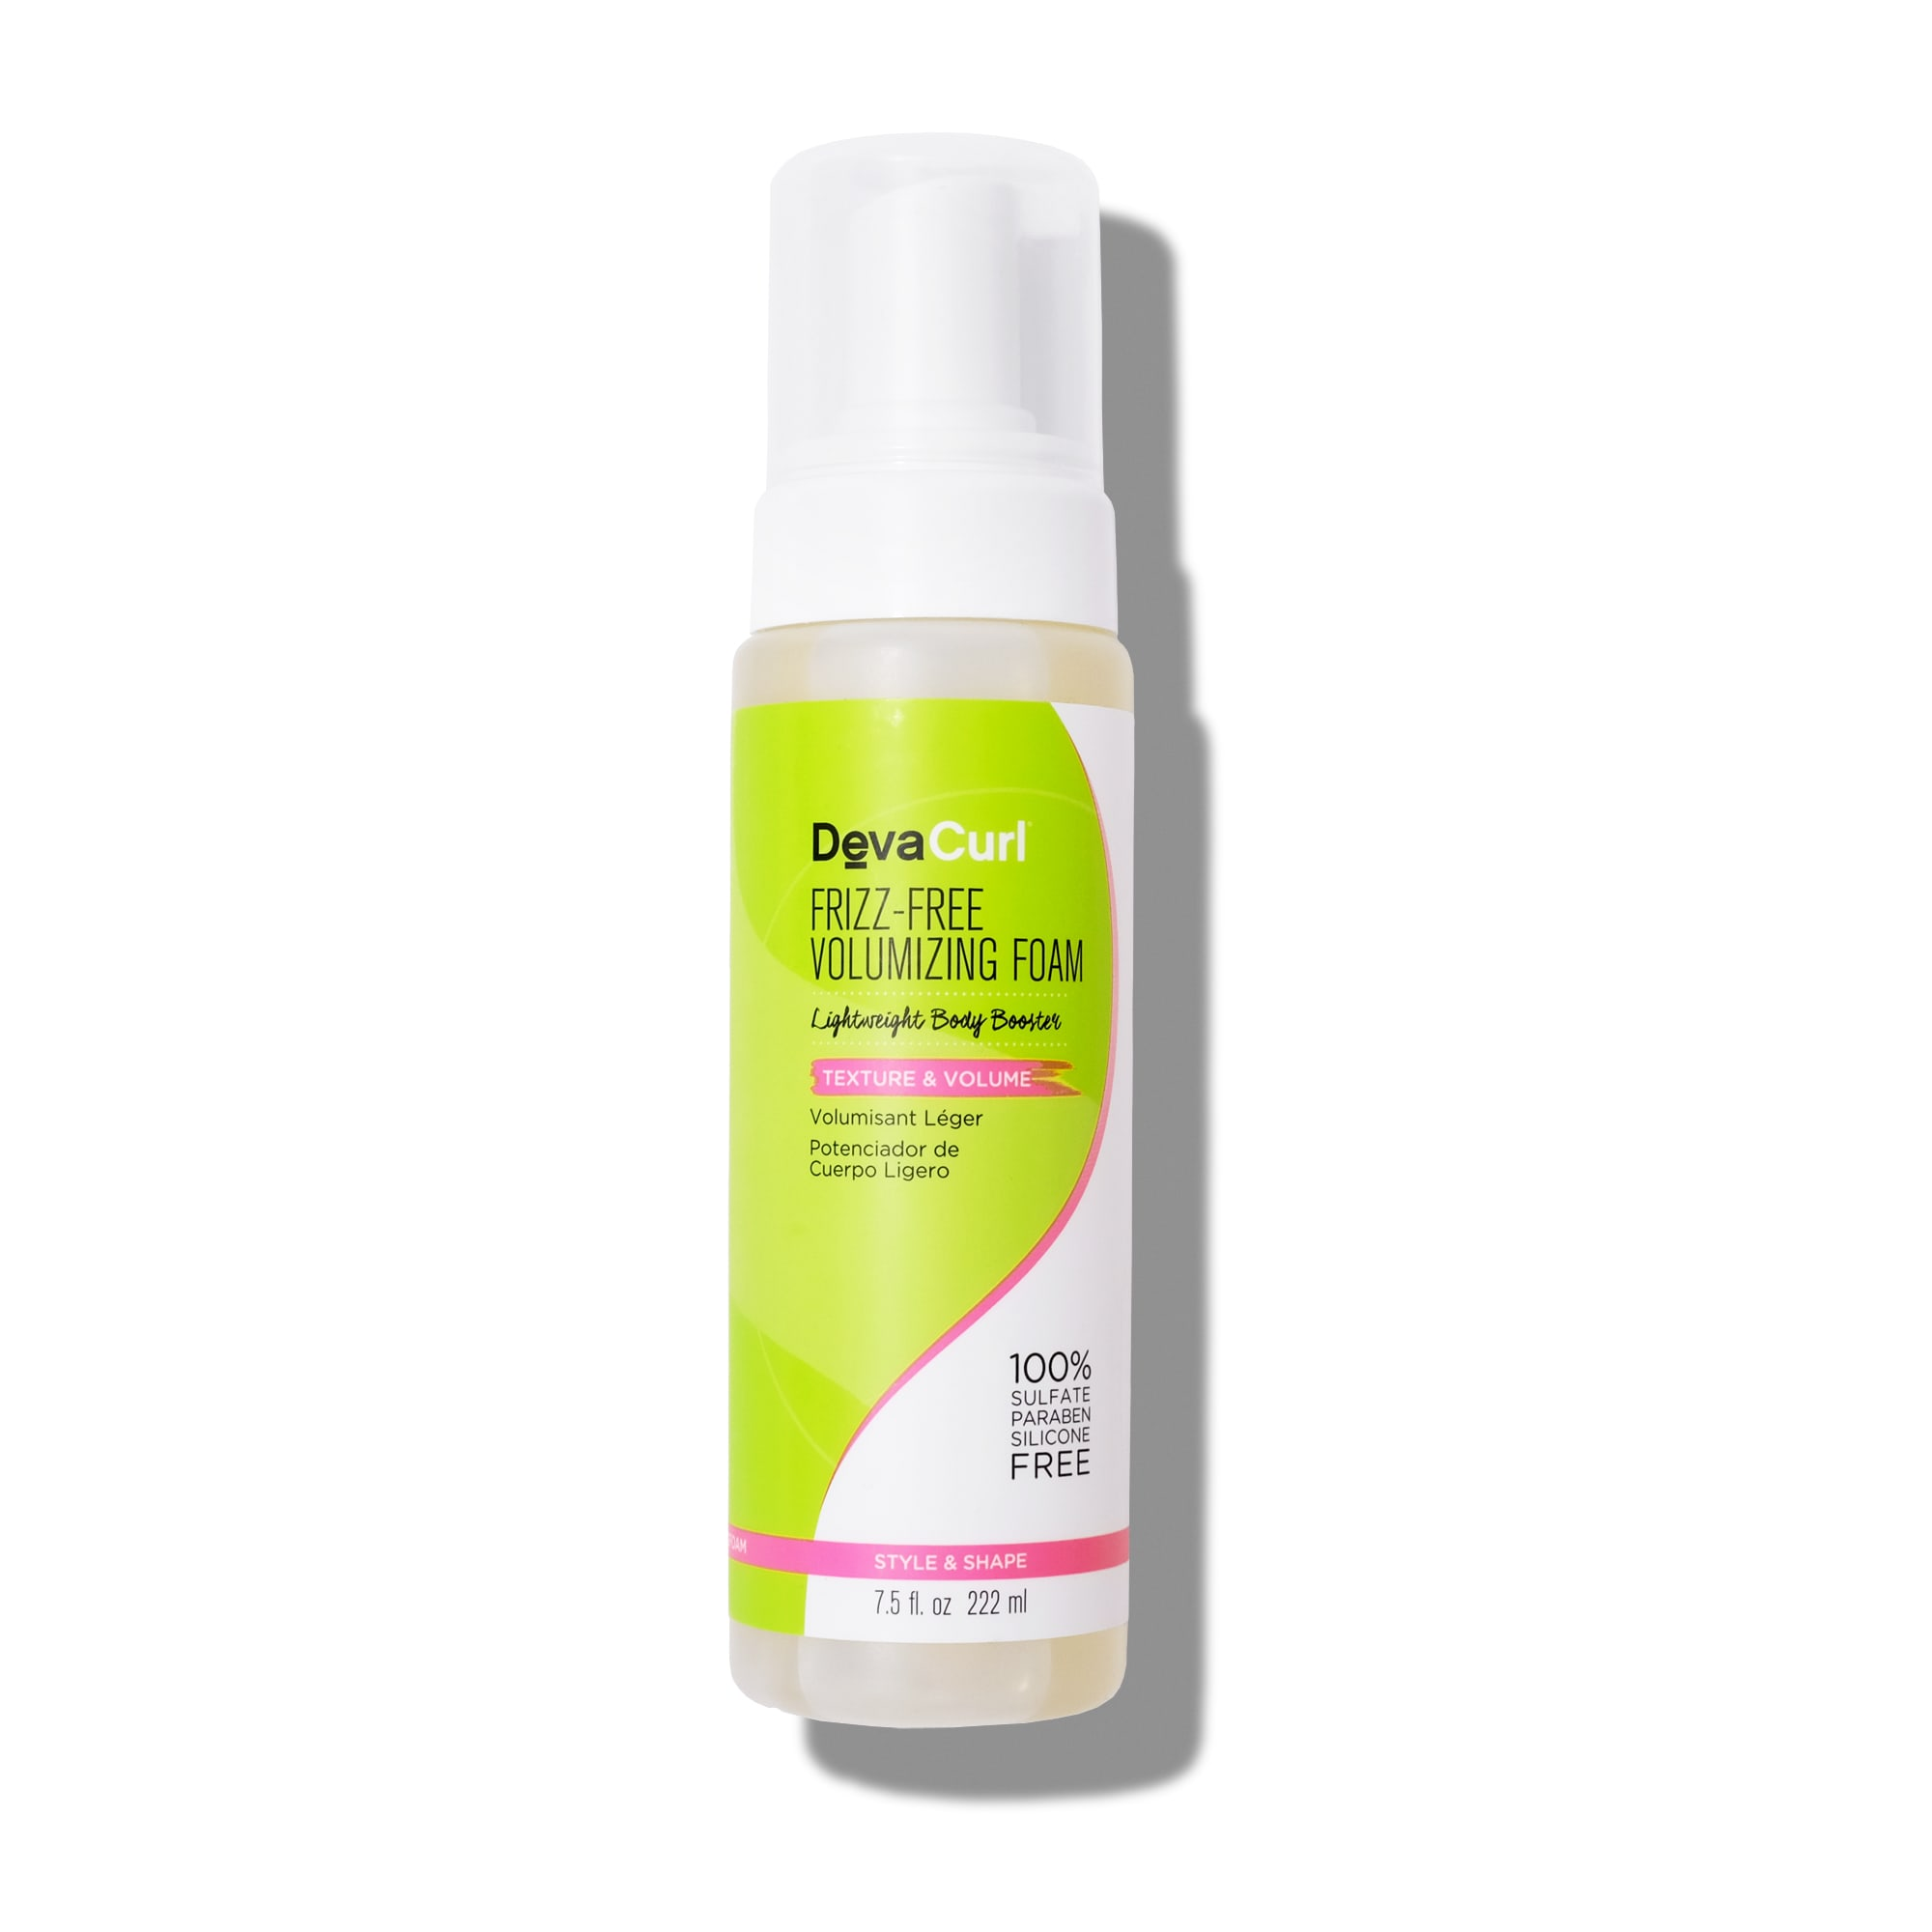 frizz-free volumizing foam 7.5oz bottle